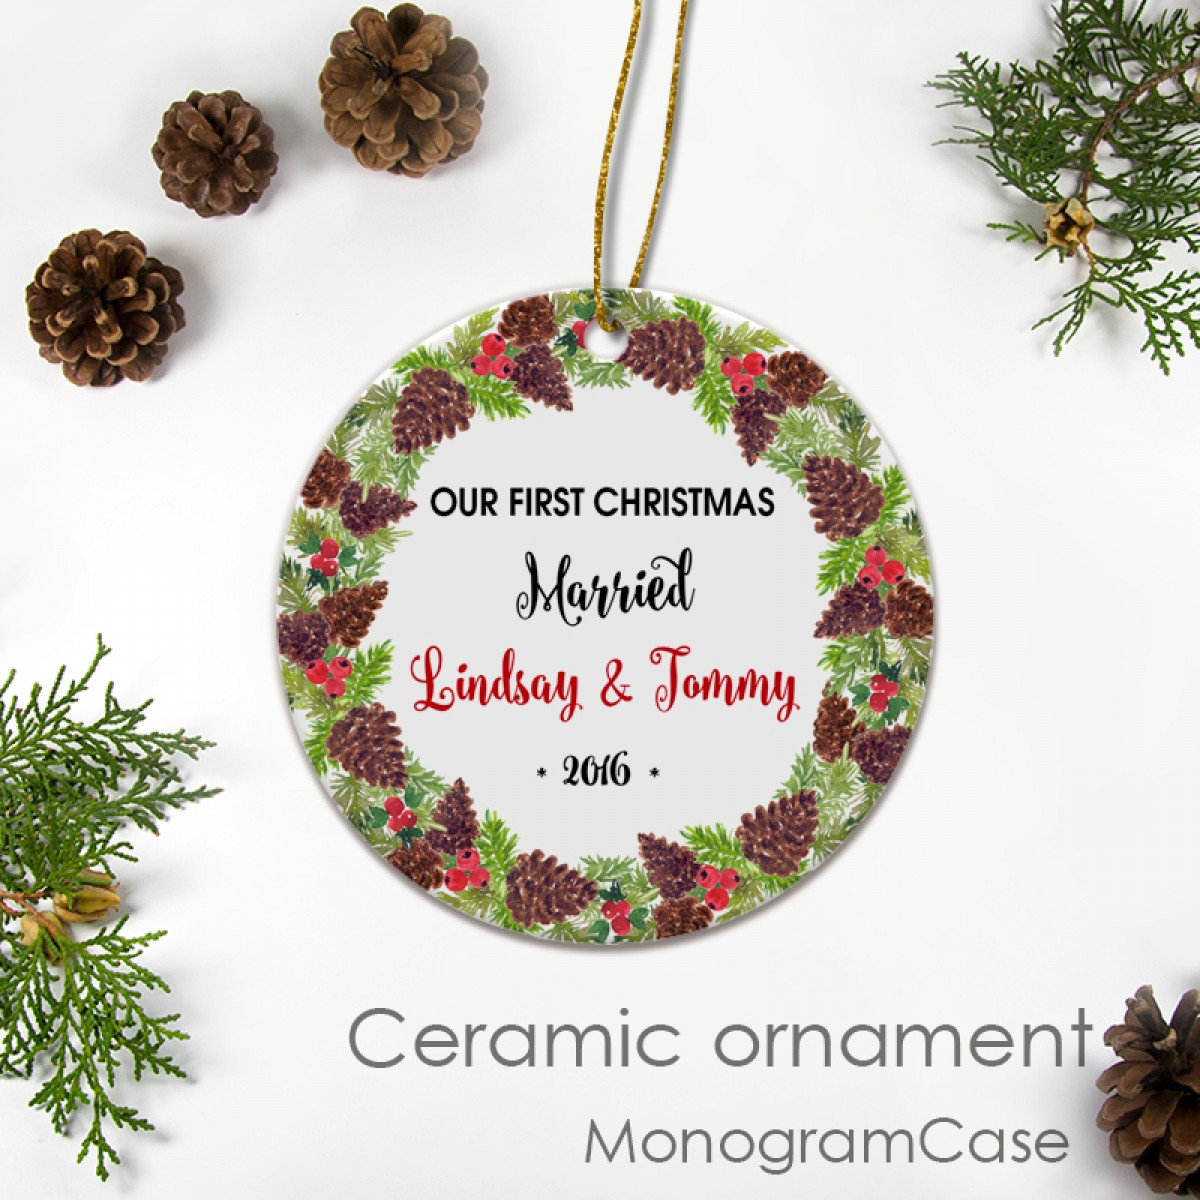 Christmas Ornaments With Names On Them.Personalized Christmas Ornament Custom Name Gift